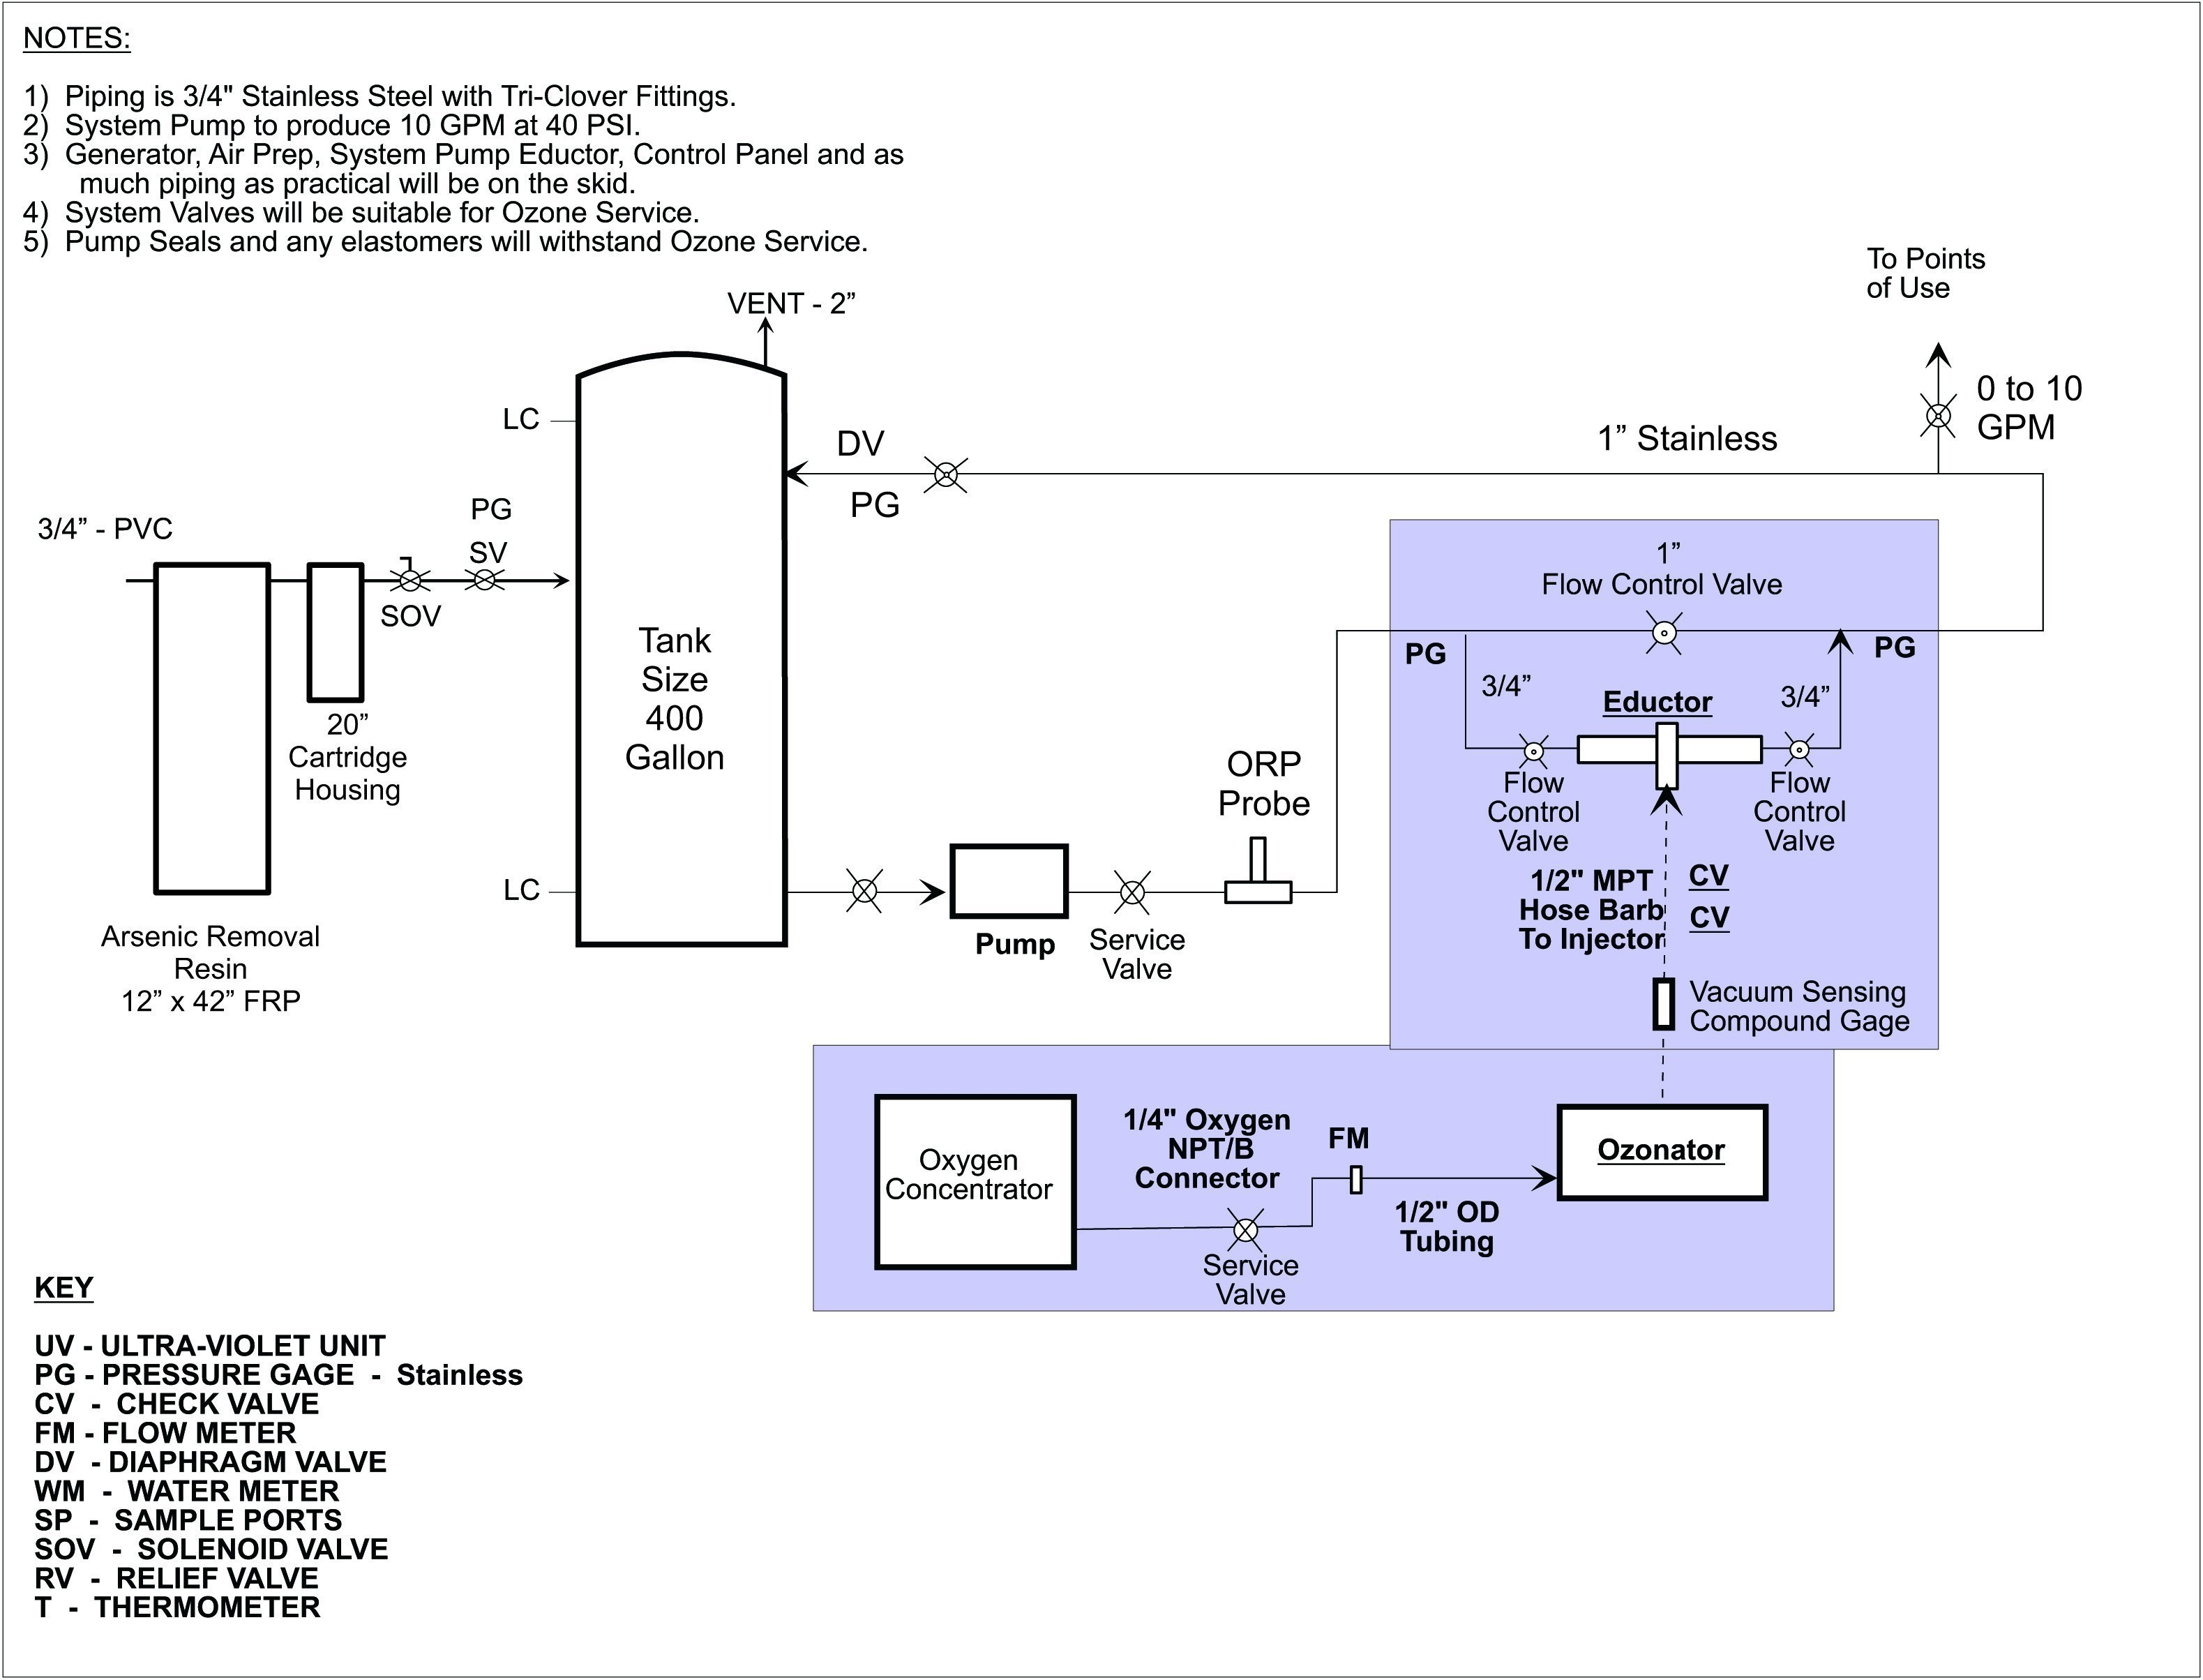 51 New Wiring Diagram for Trailer Lights Gallery